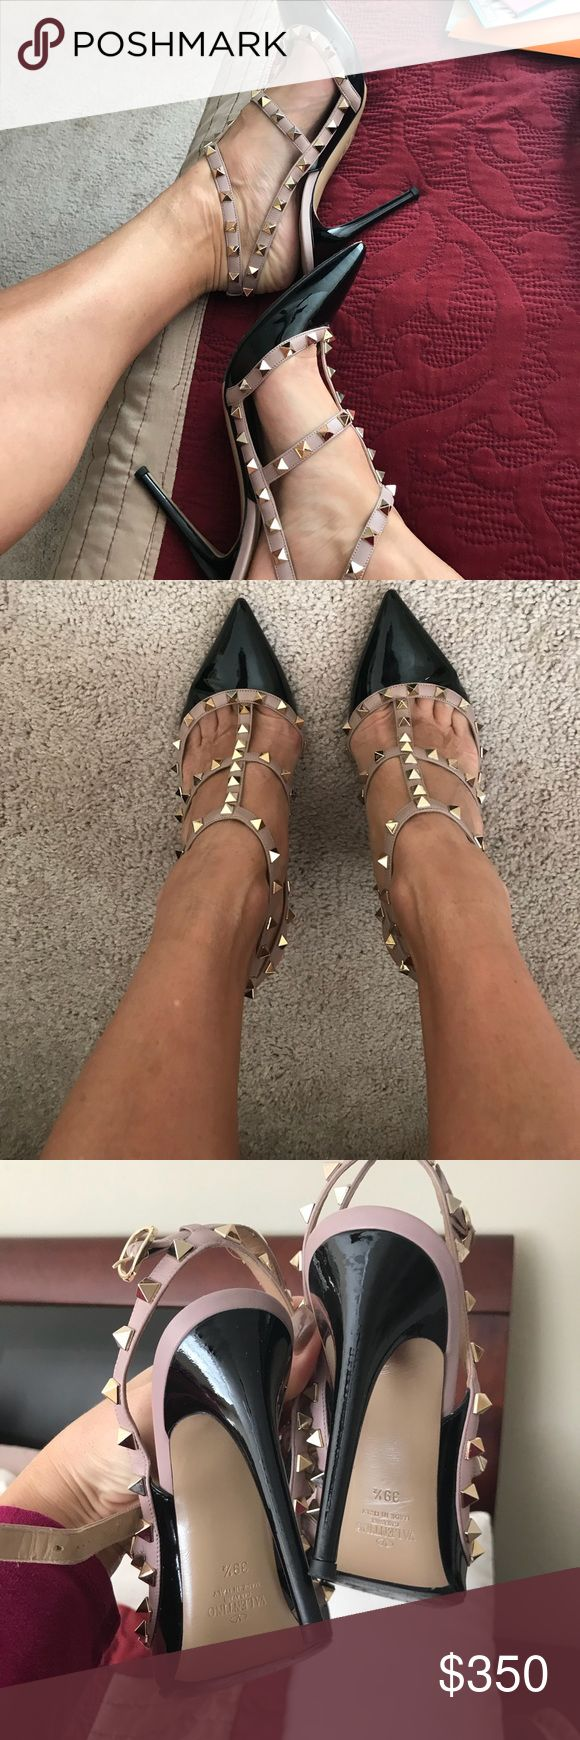 Valentino Rockstud heels These have only been worn a couple of times and are in excellent pre-loved condition. Only a little scuff on bottom and no other scratches or scuffs. They are a tad too small for me, needed a 9.5 but these were on sale. No box or dust bag Valentino Shoes Heels